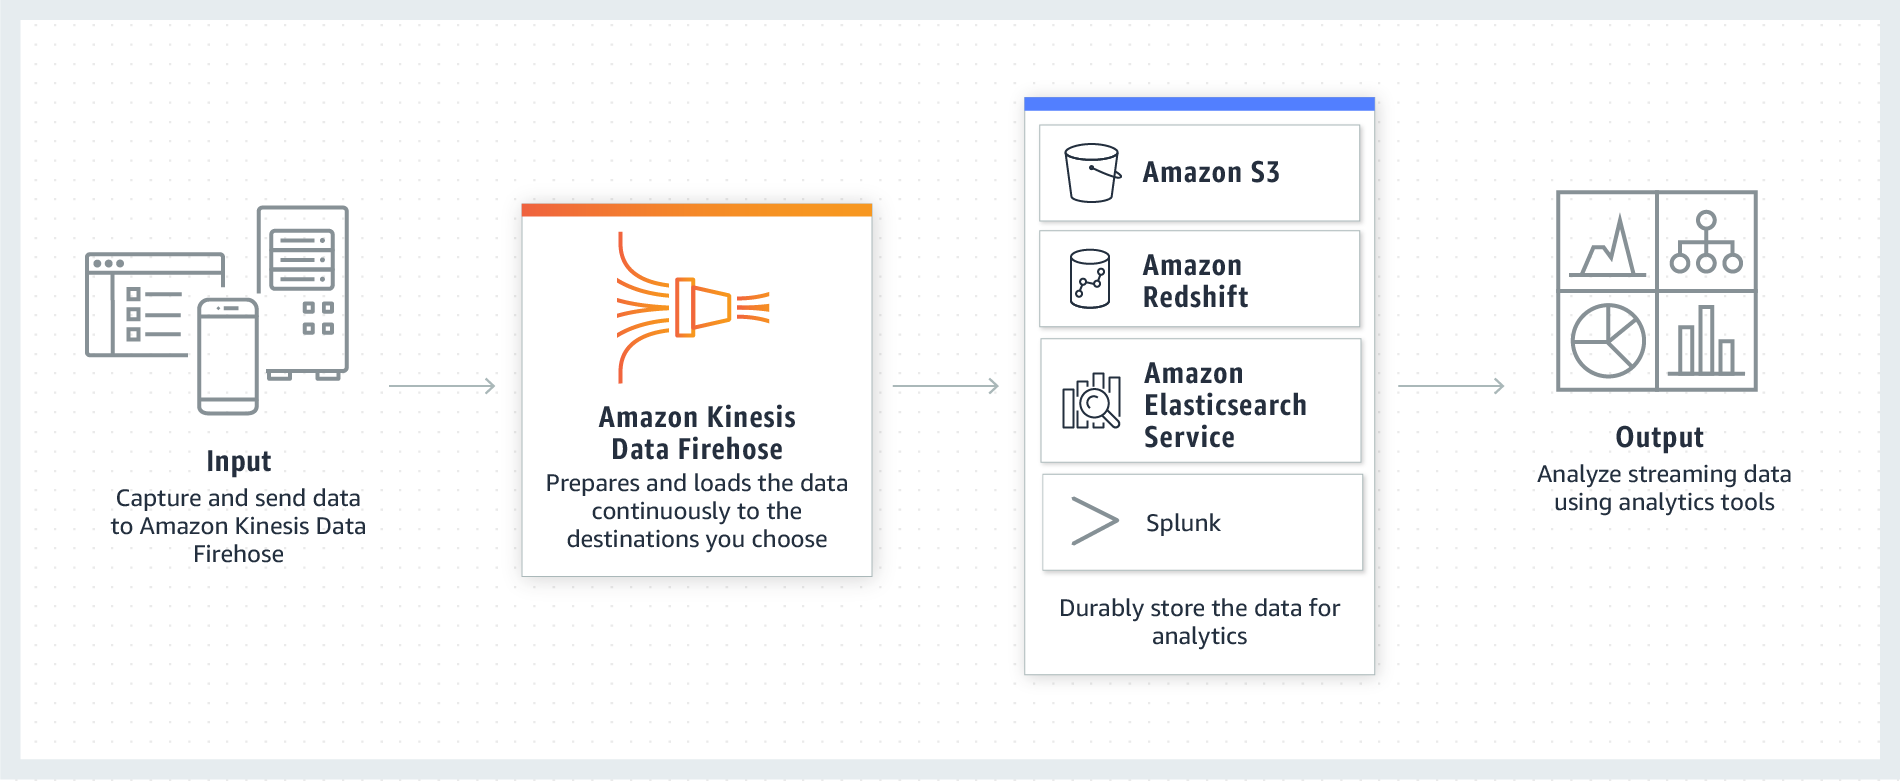 Como funciona o Amazon Kinesis Data Firehose